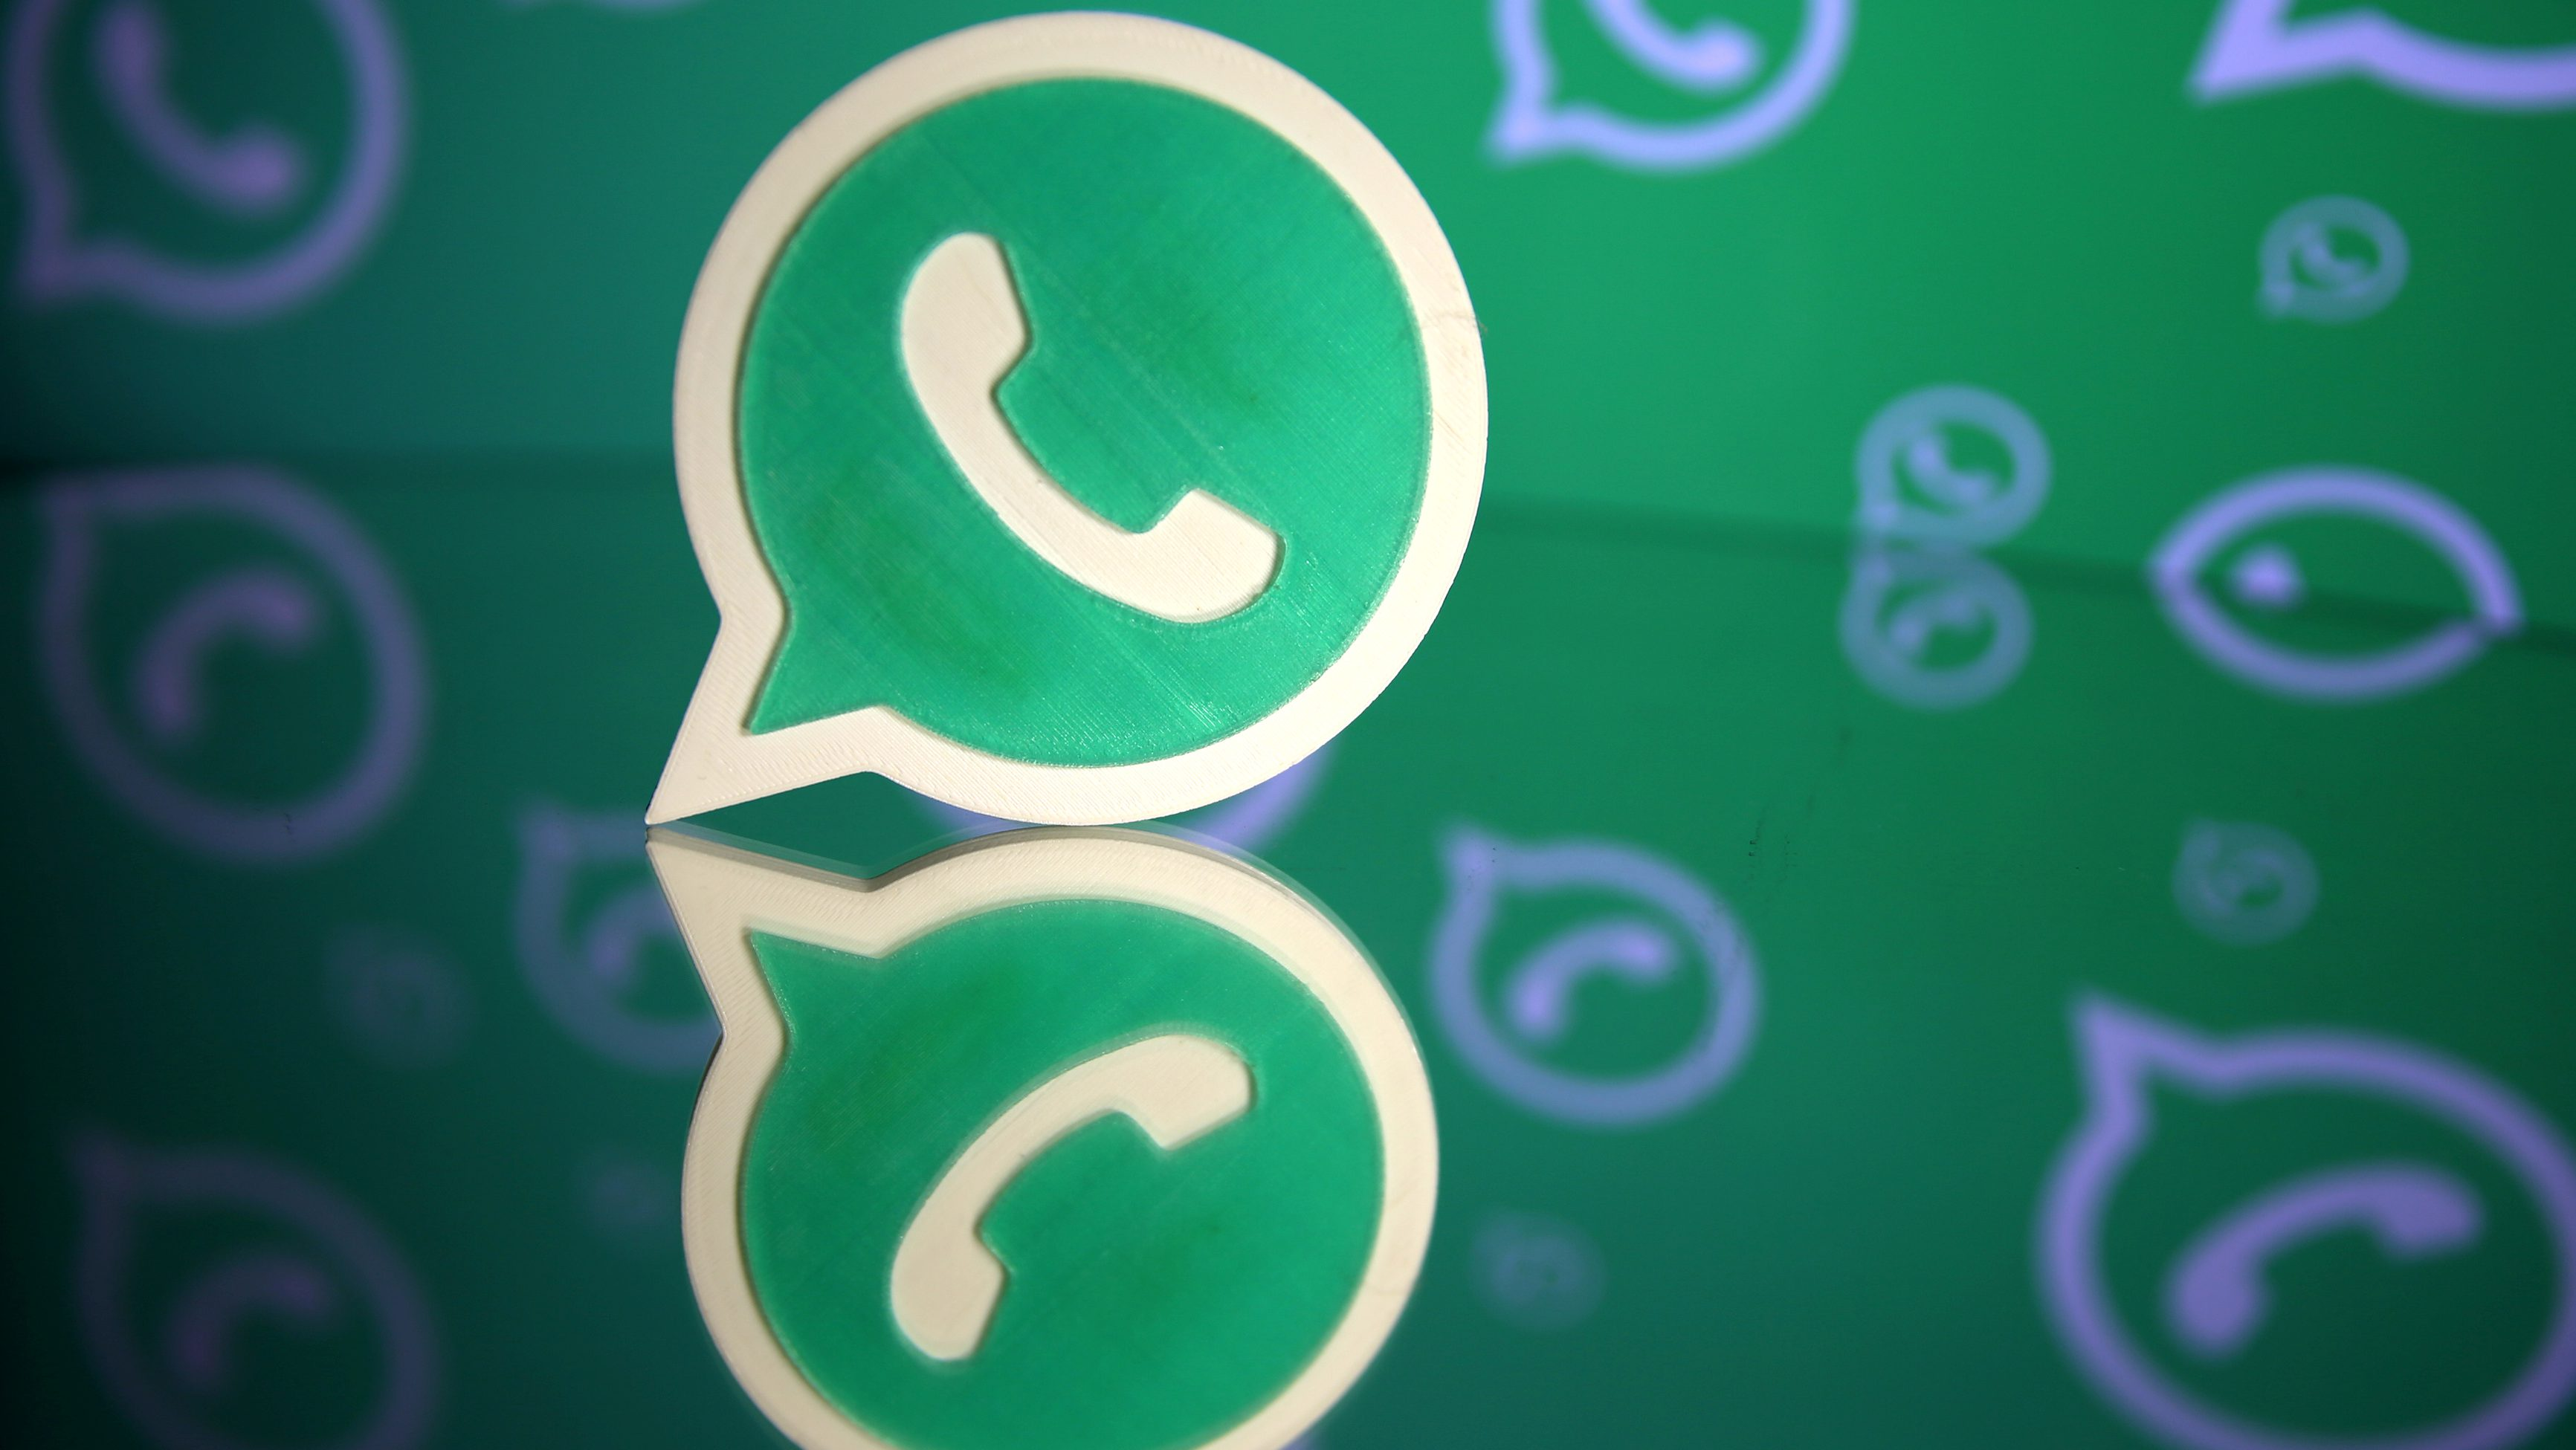 A 3D printed Whatsapp logo is seen in front of a displayed Whatsapp logo in this illustration